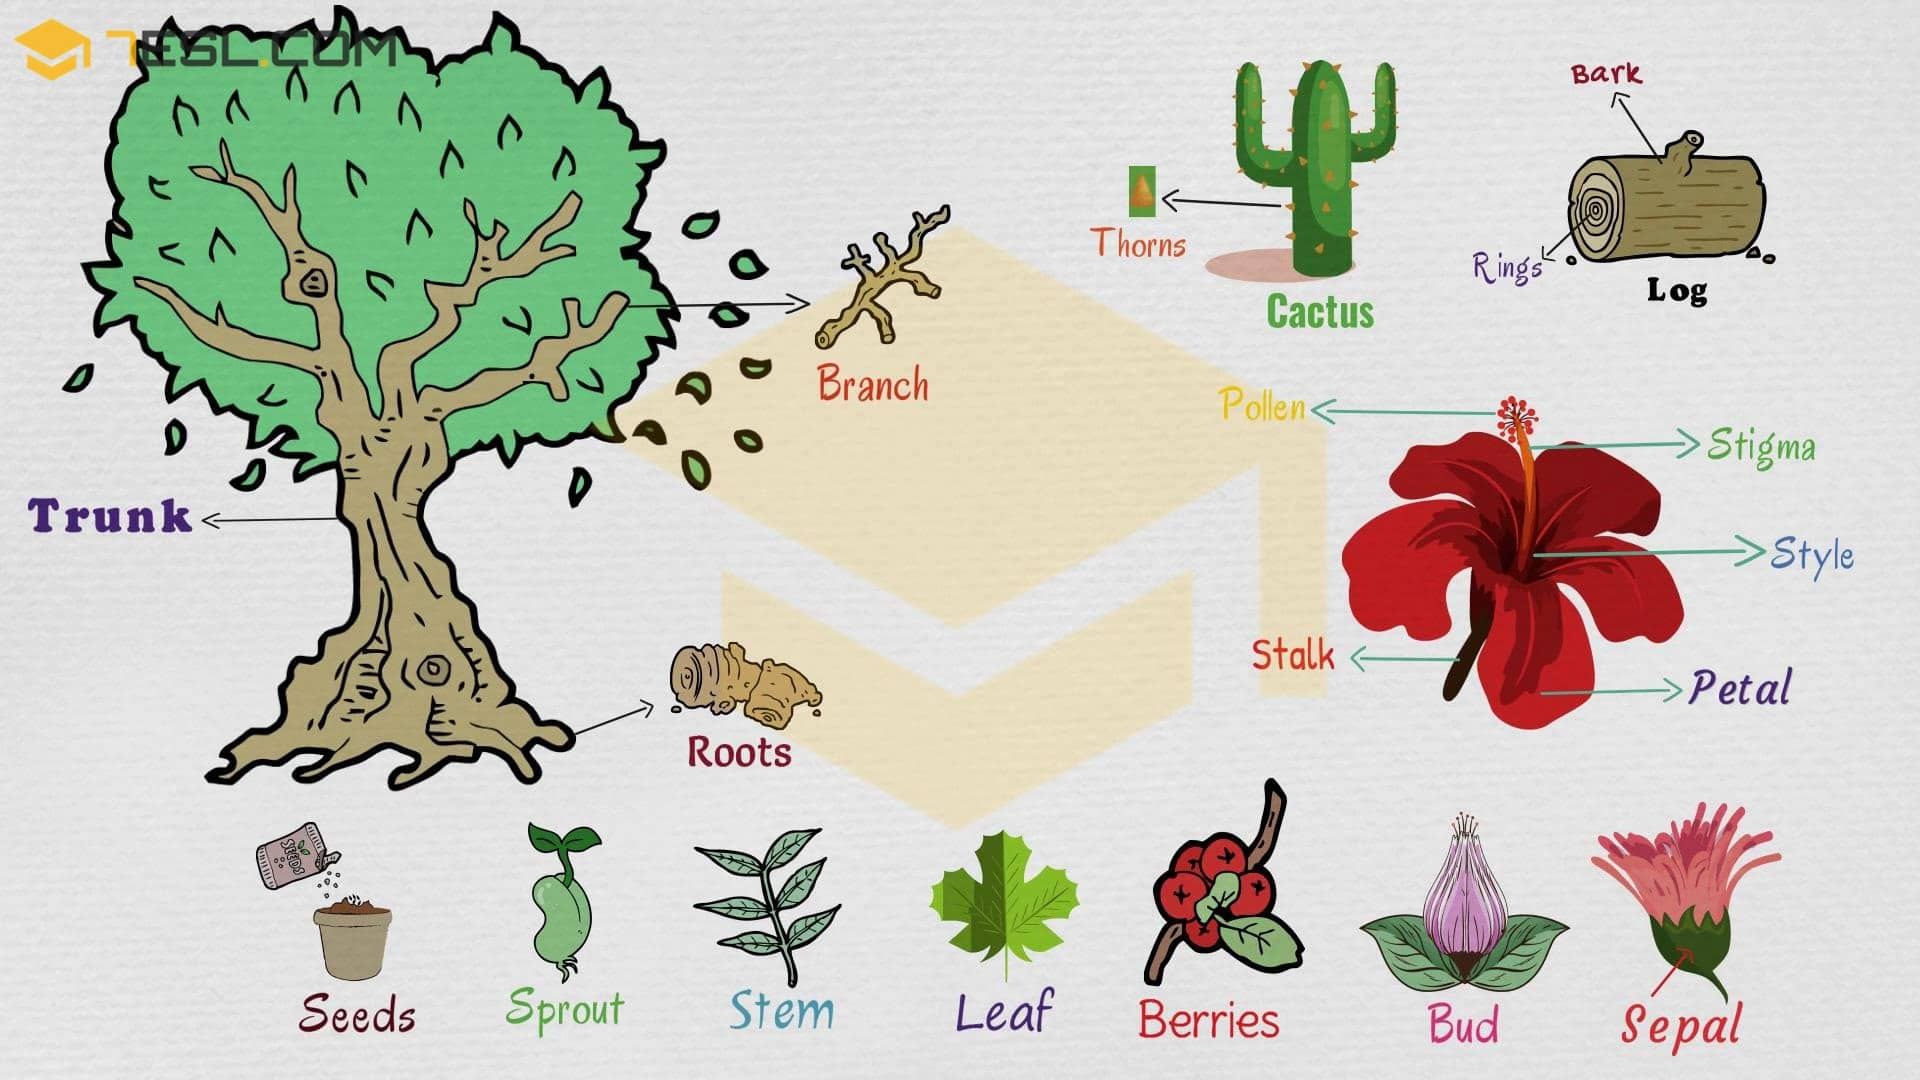 Tree trunk clipart space for a vocabulary word graphic library Parts of A Plant: Useful Plant Parts with Pictures - 7 E S L graphic library